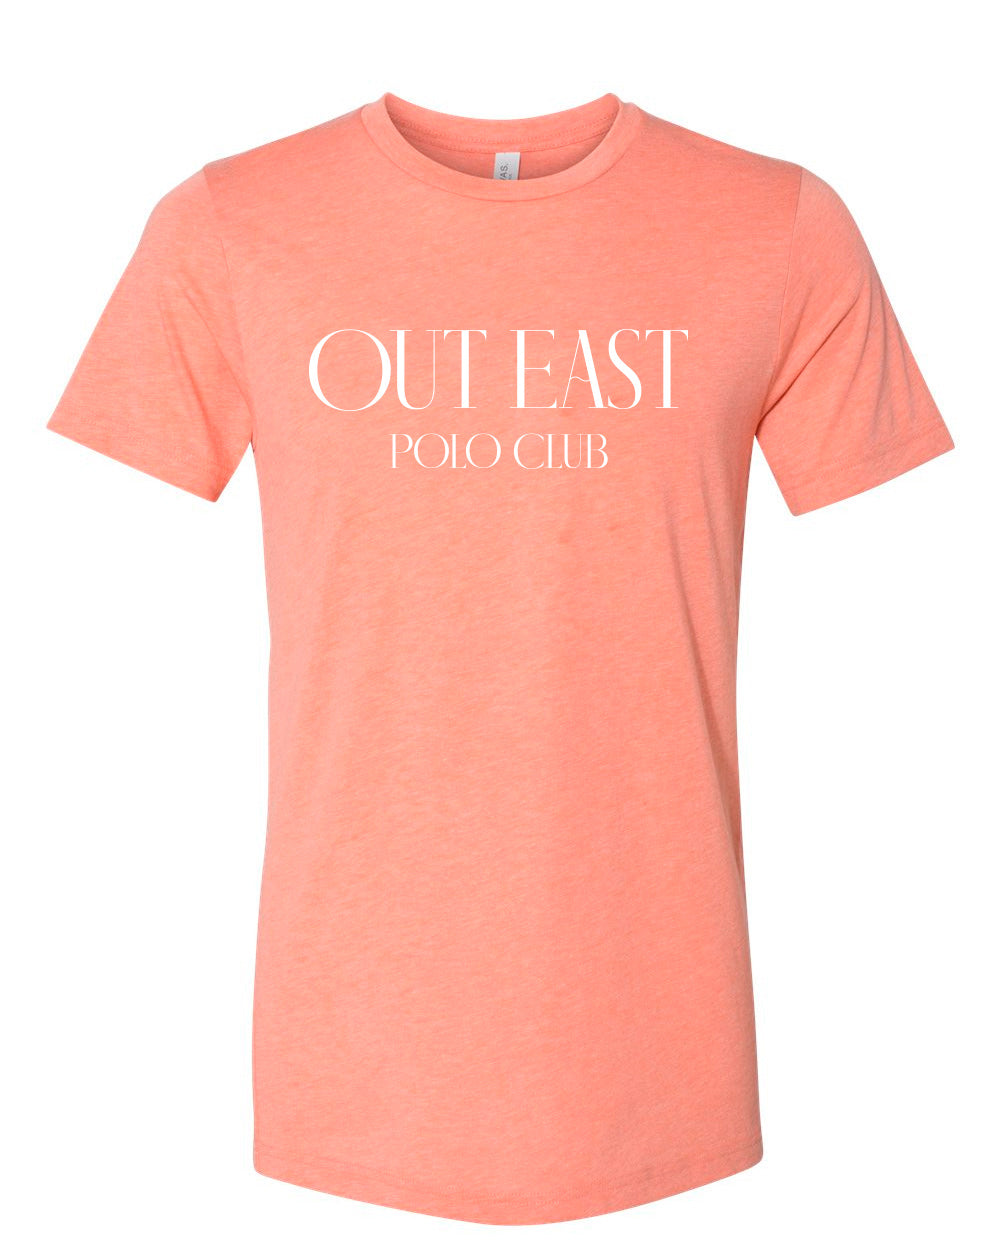 OUT EAST® POLO CLUB T-SHIRT